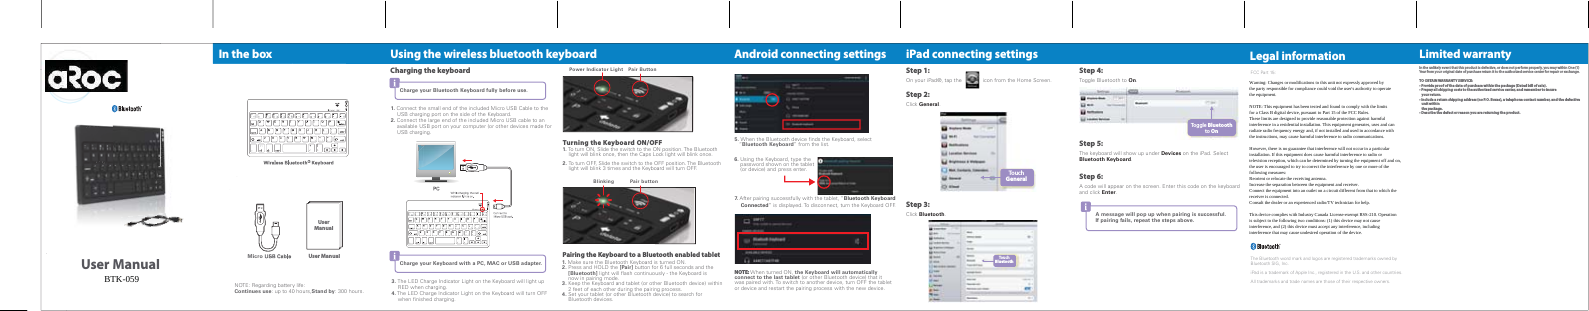 Bluetooth Keyboard Won't Reconnect After Being Removed 2248694-0-png.png